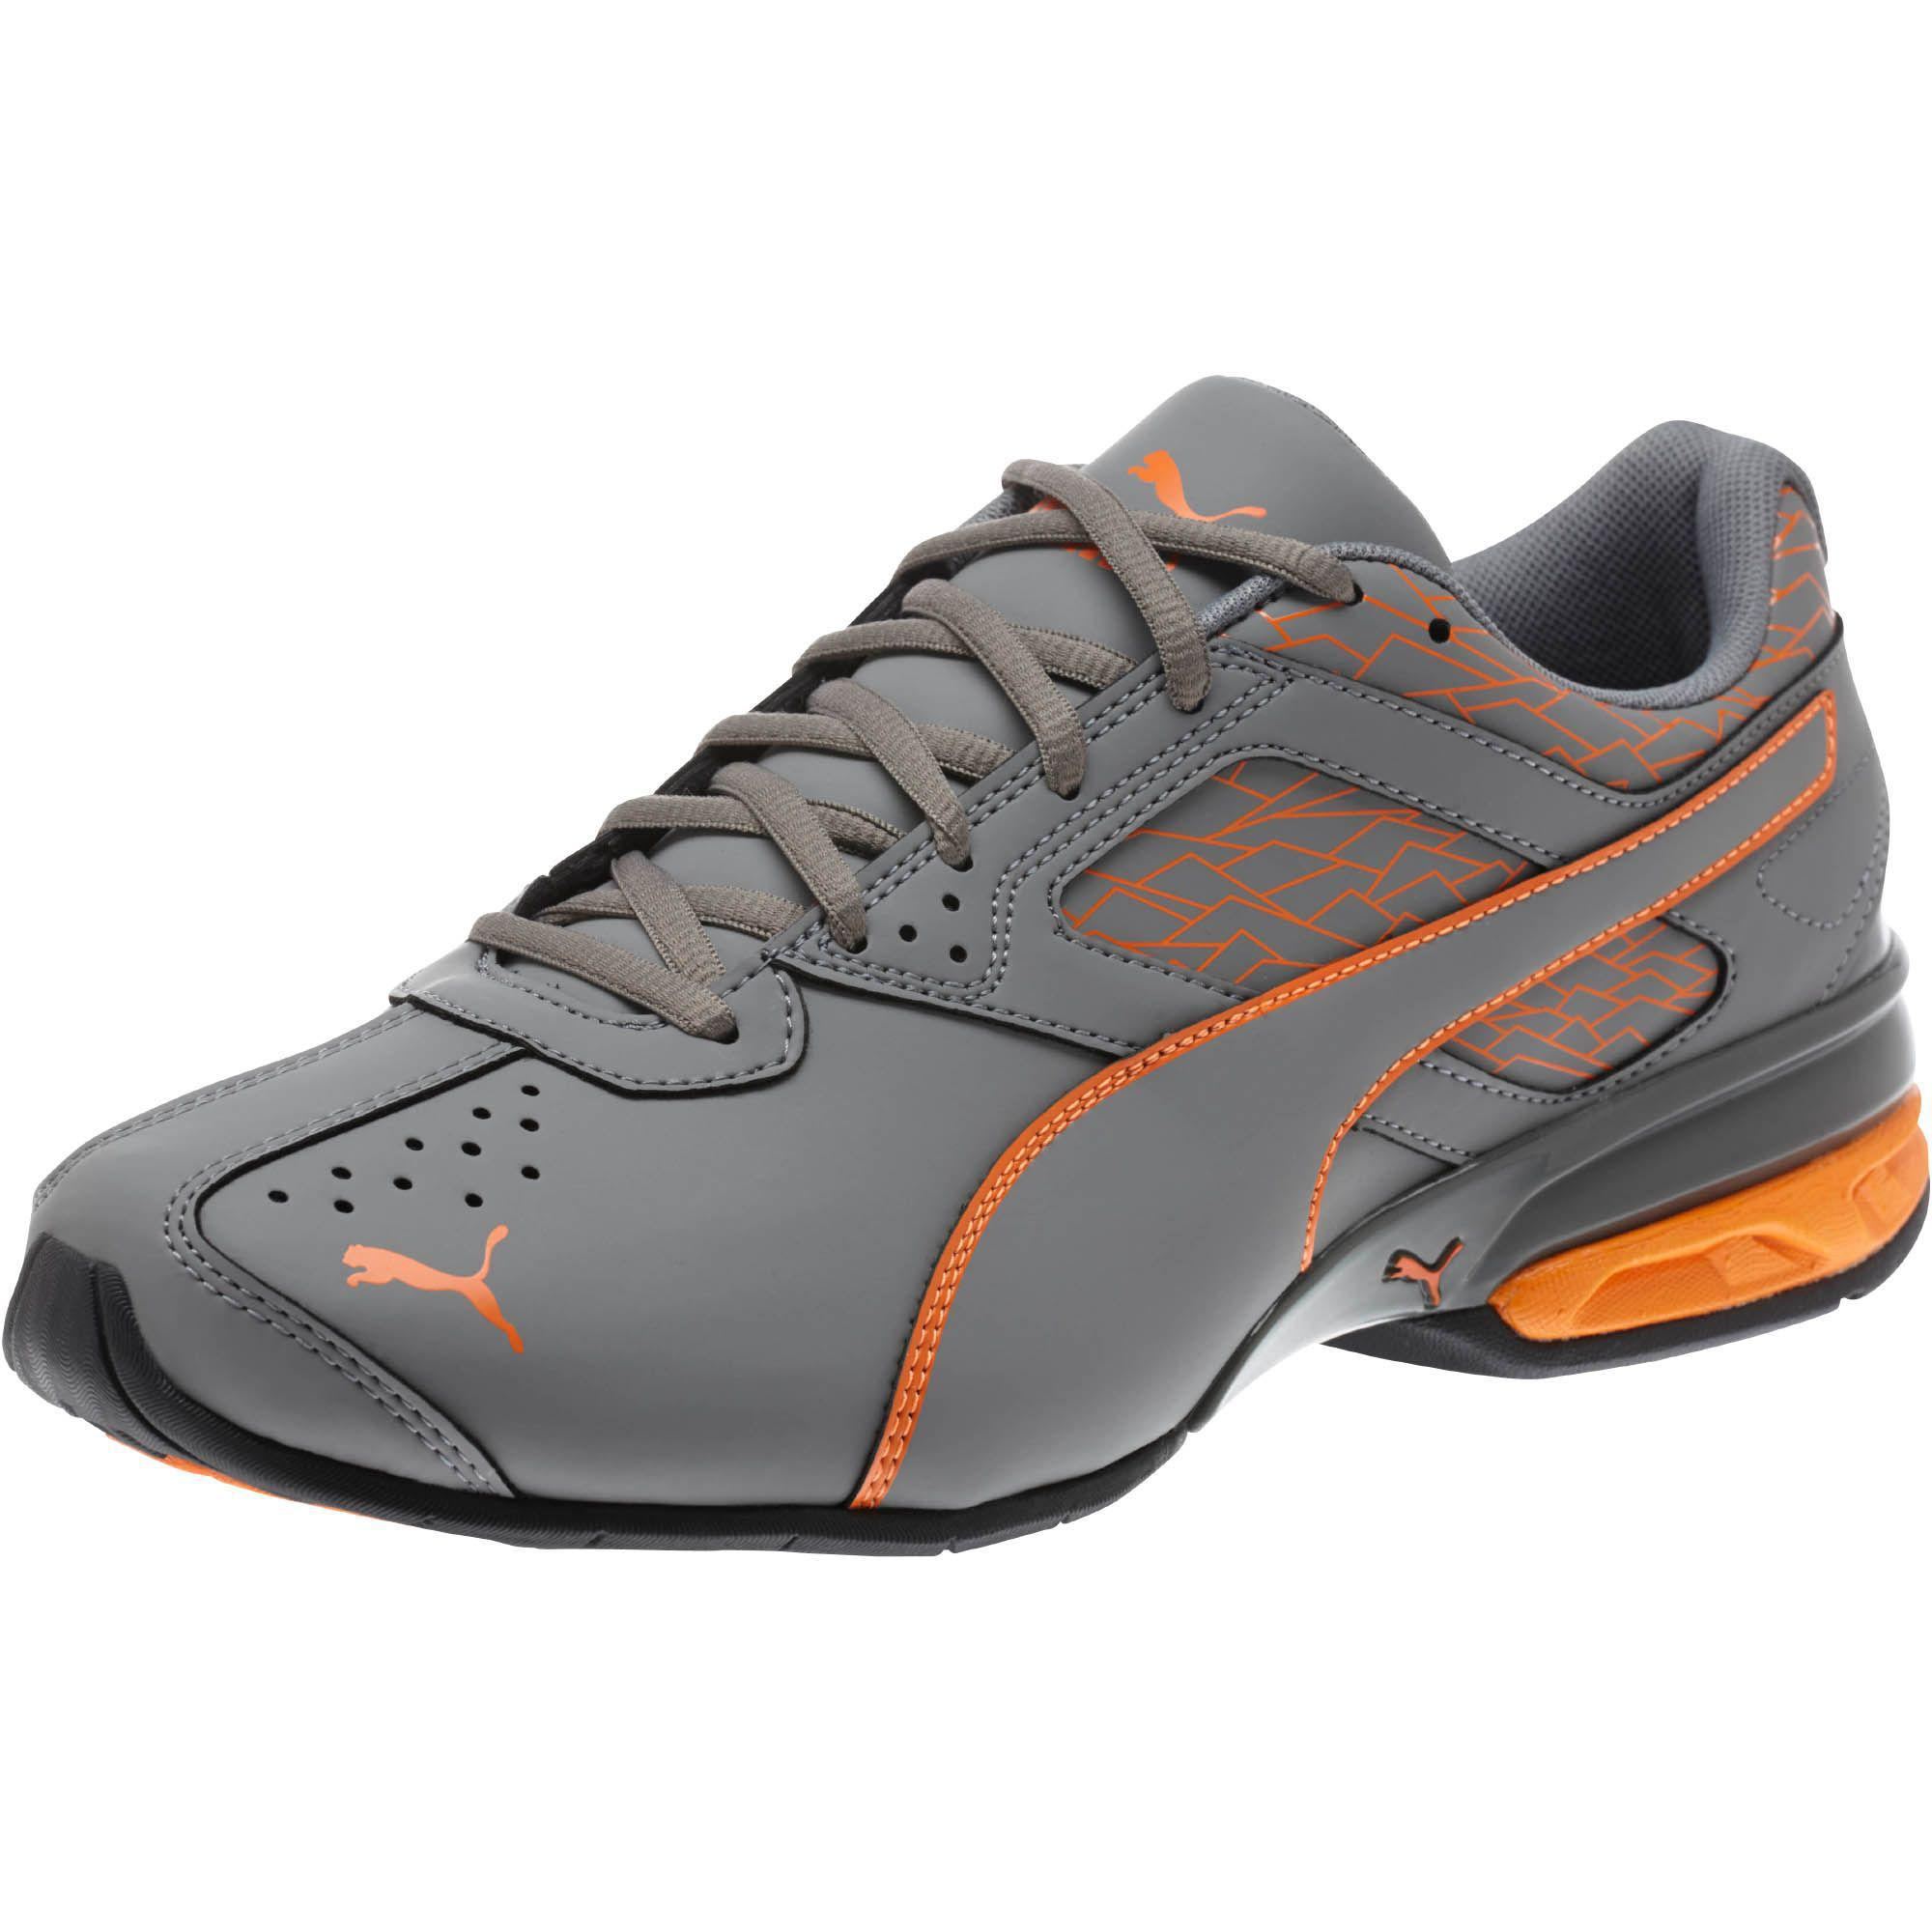 PUMA - Gray Tazon 6 Fracture Men's Running Shoes for Men - Lyst. View  fullscreen